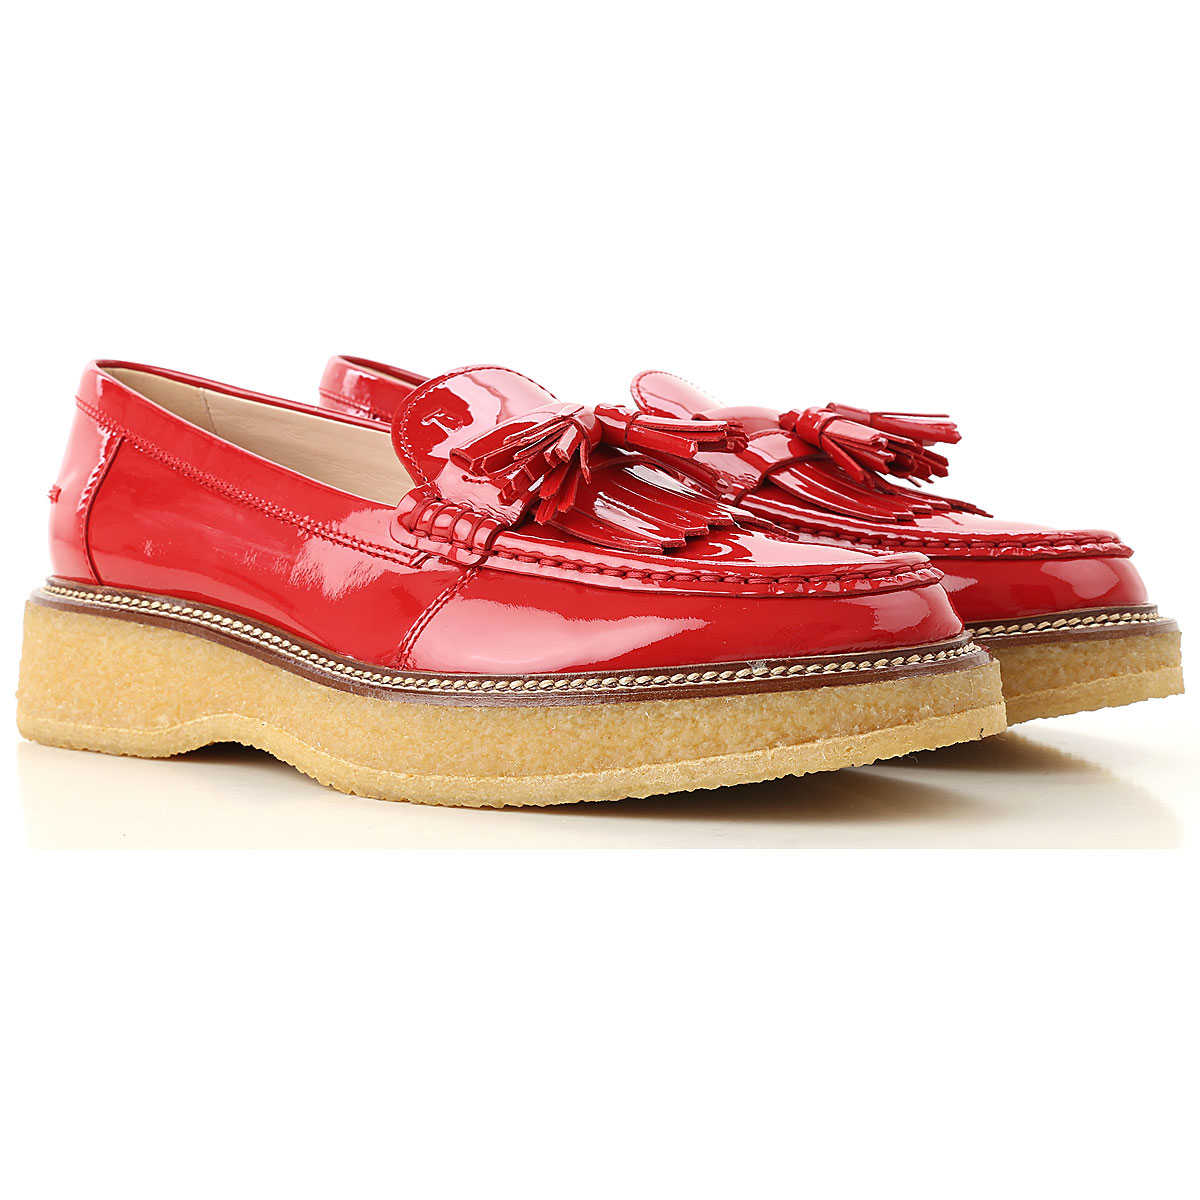 Tods Loafers for Women On Sale Ruby Red SE - GOOFASH